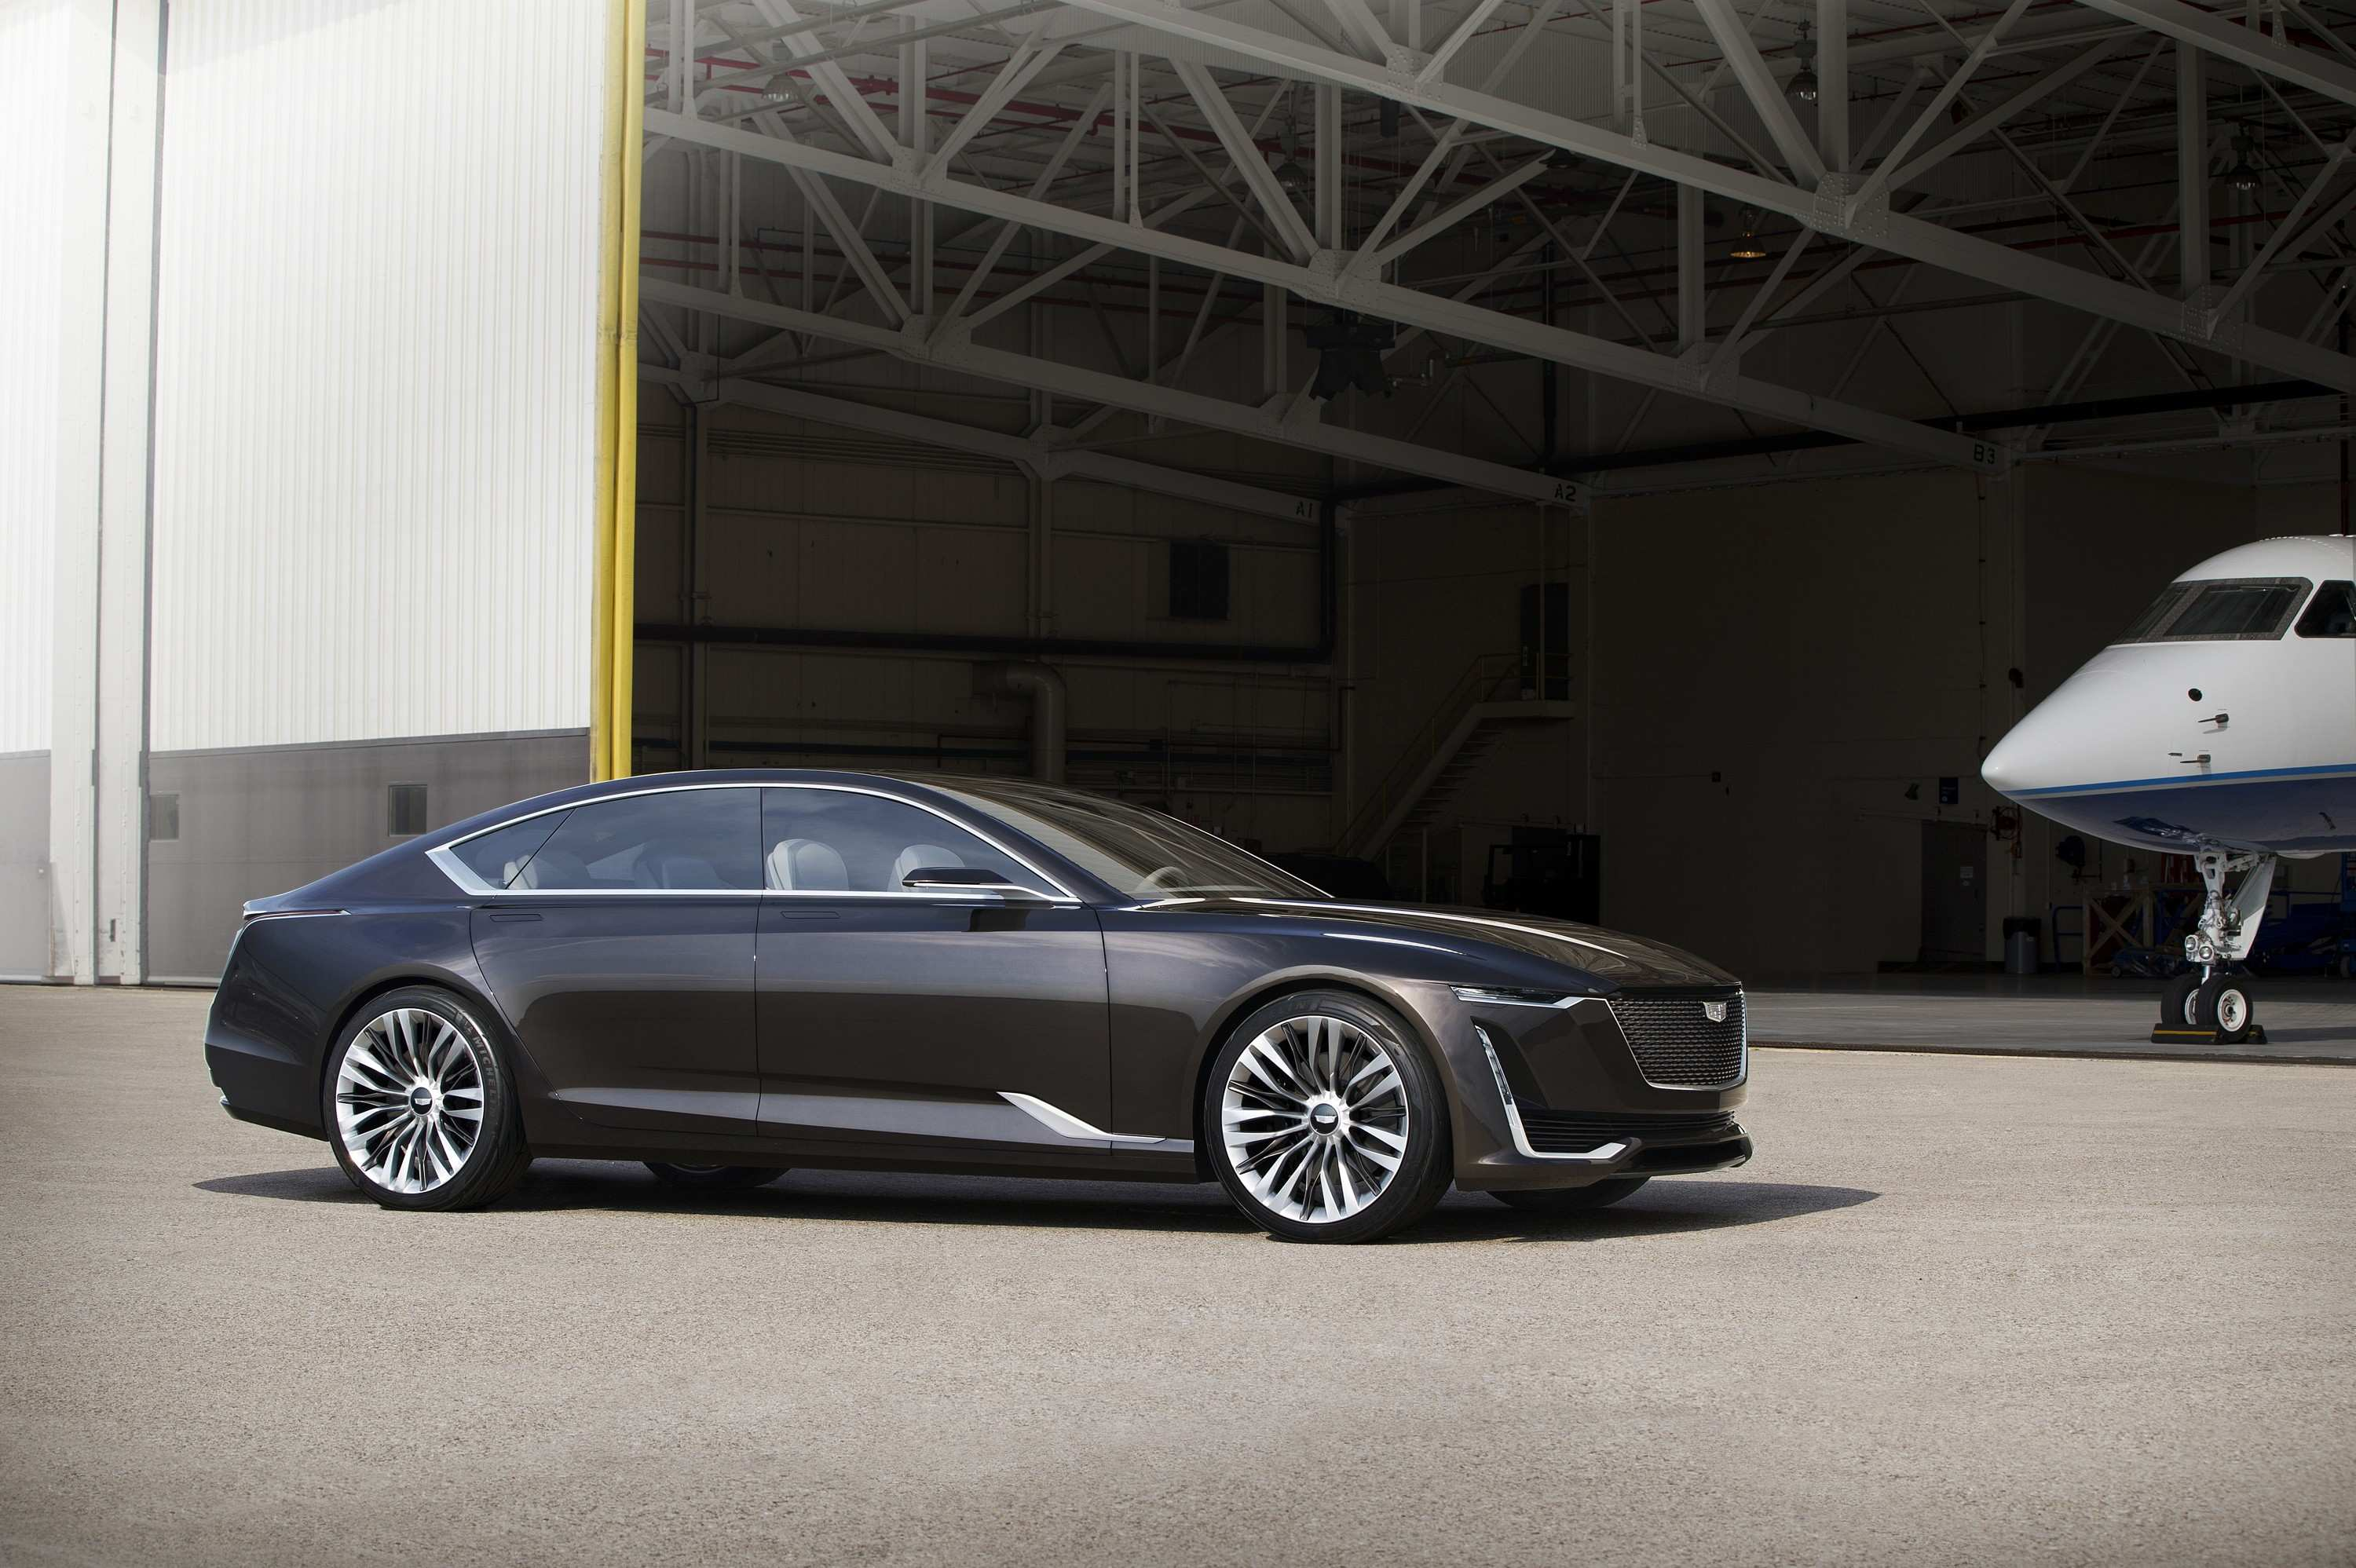 67 Concept of 2020 Cadillac CT6 Price by 2020 Cadillac CT6